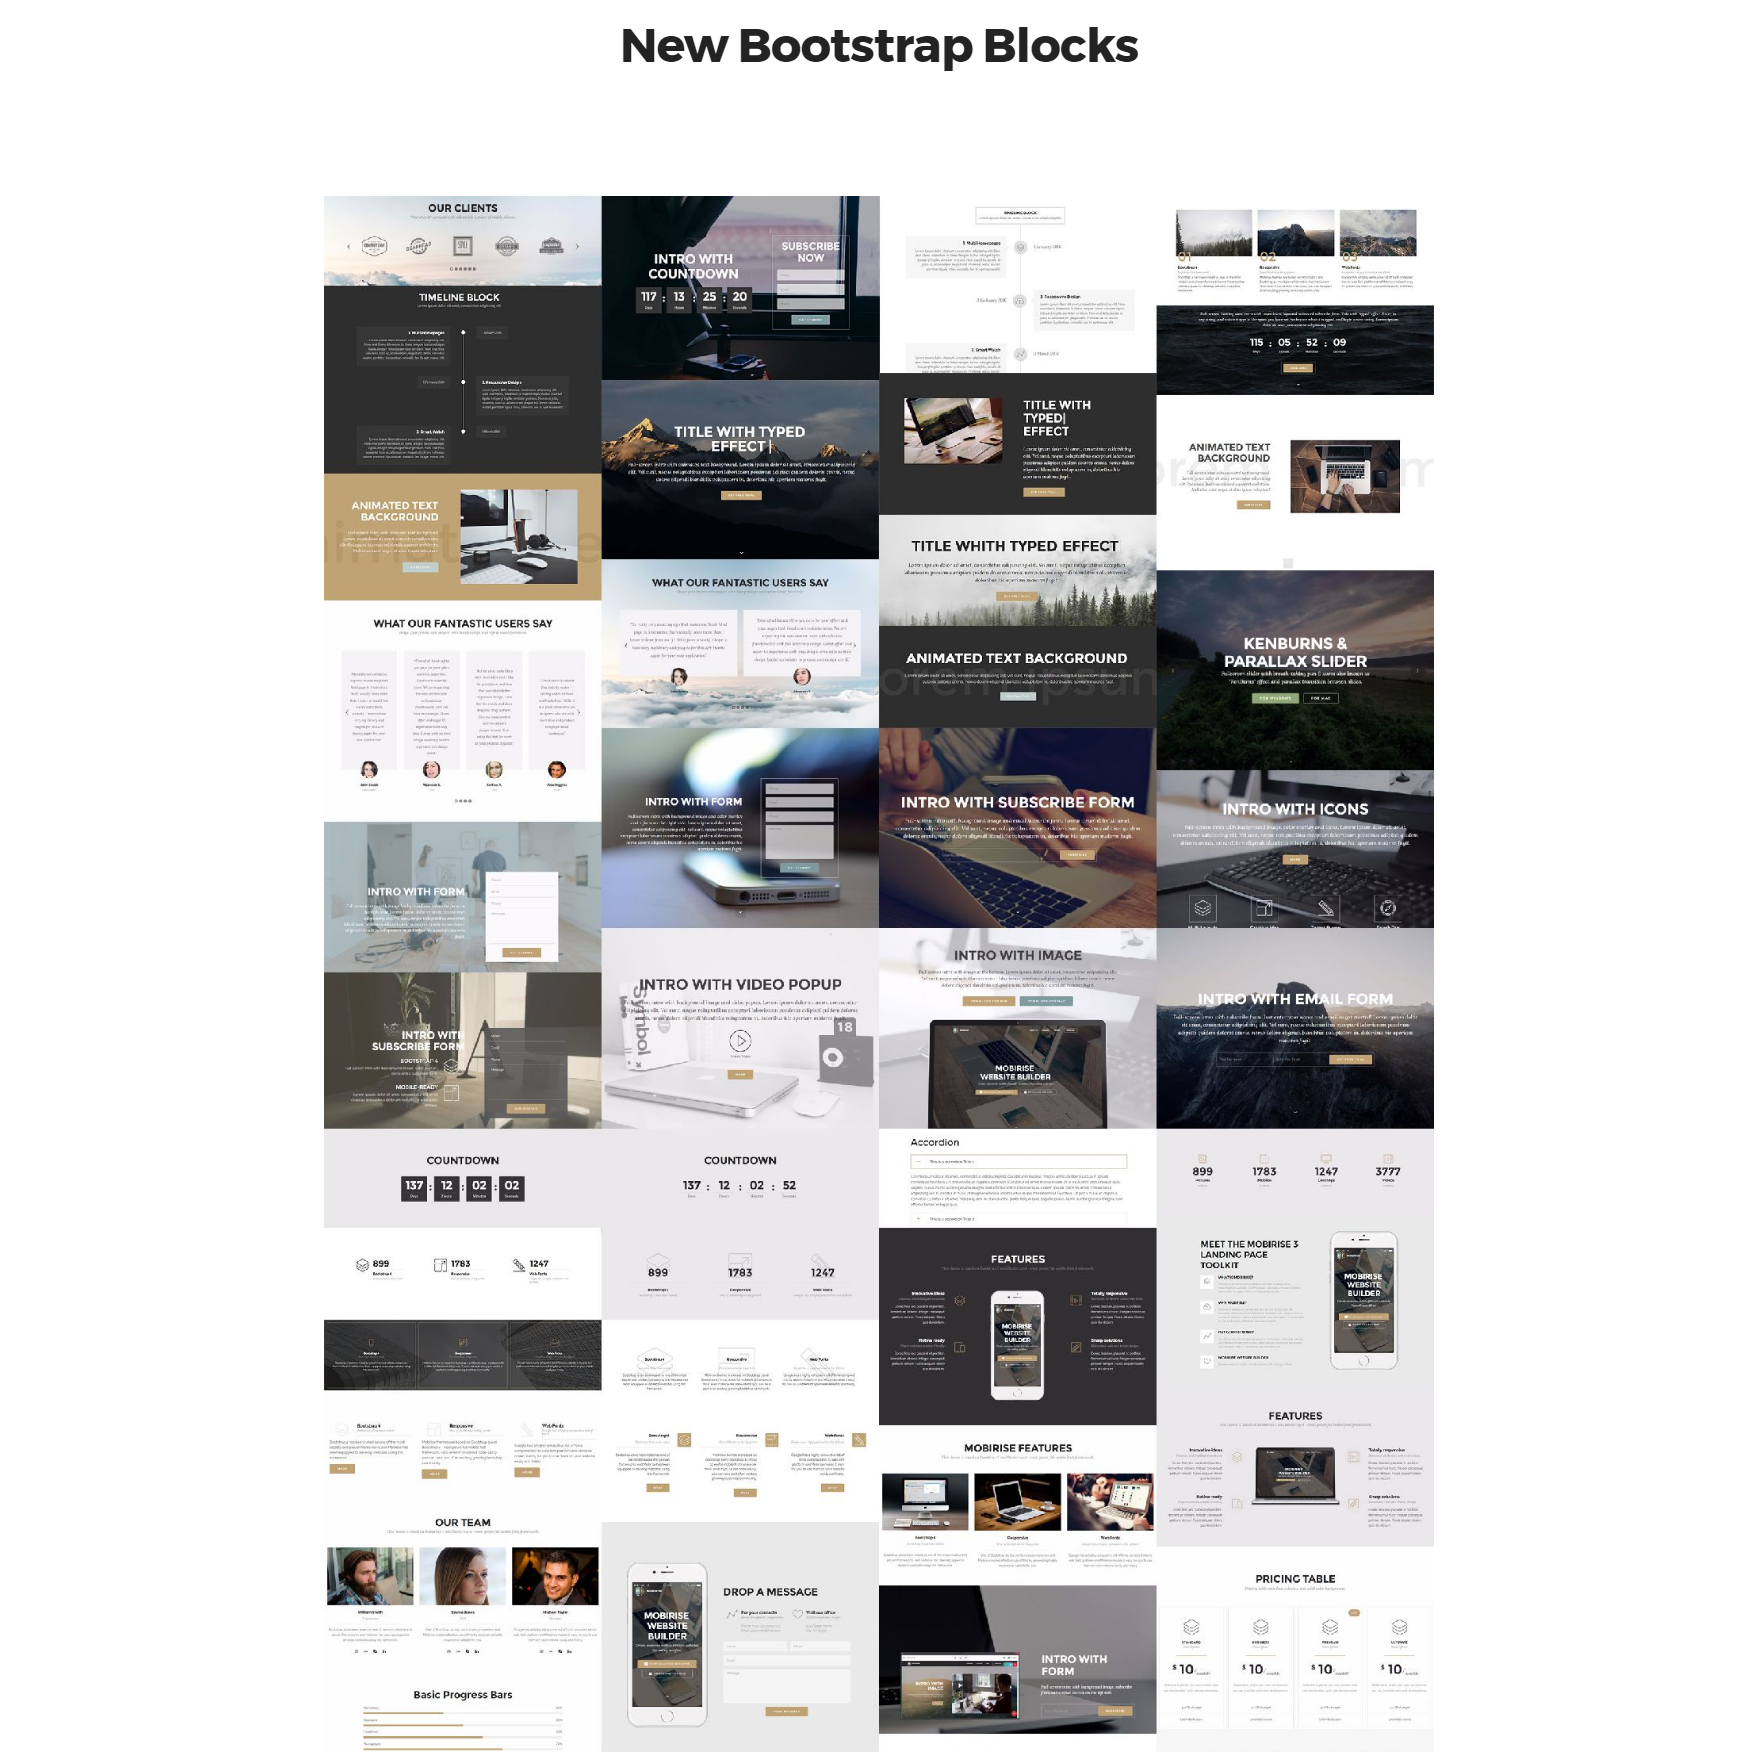 CSS3 Bootstrap 4 mobile-friendly blocks Themes